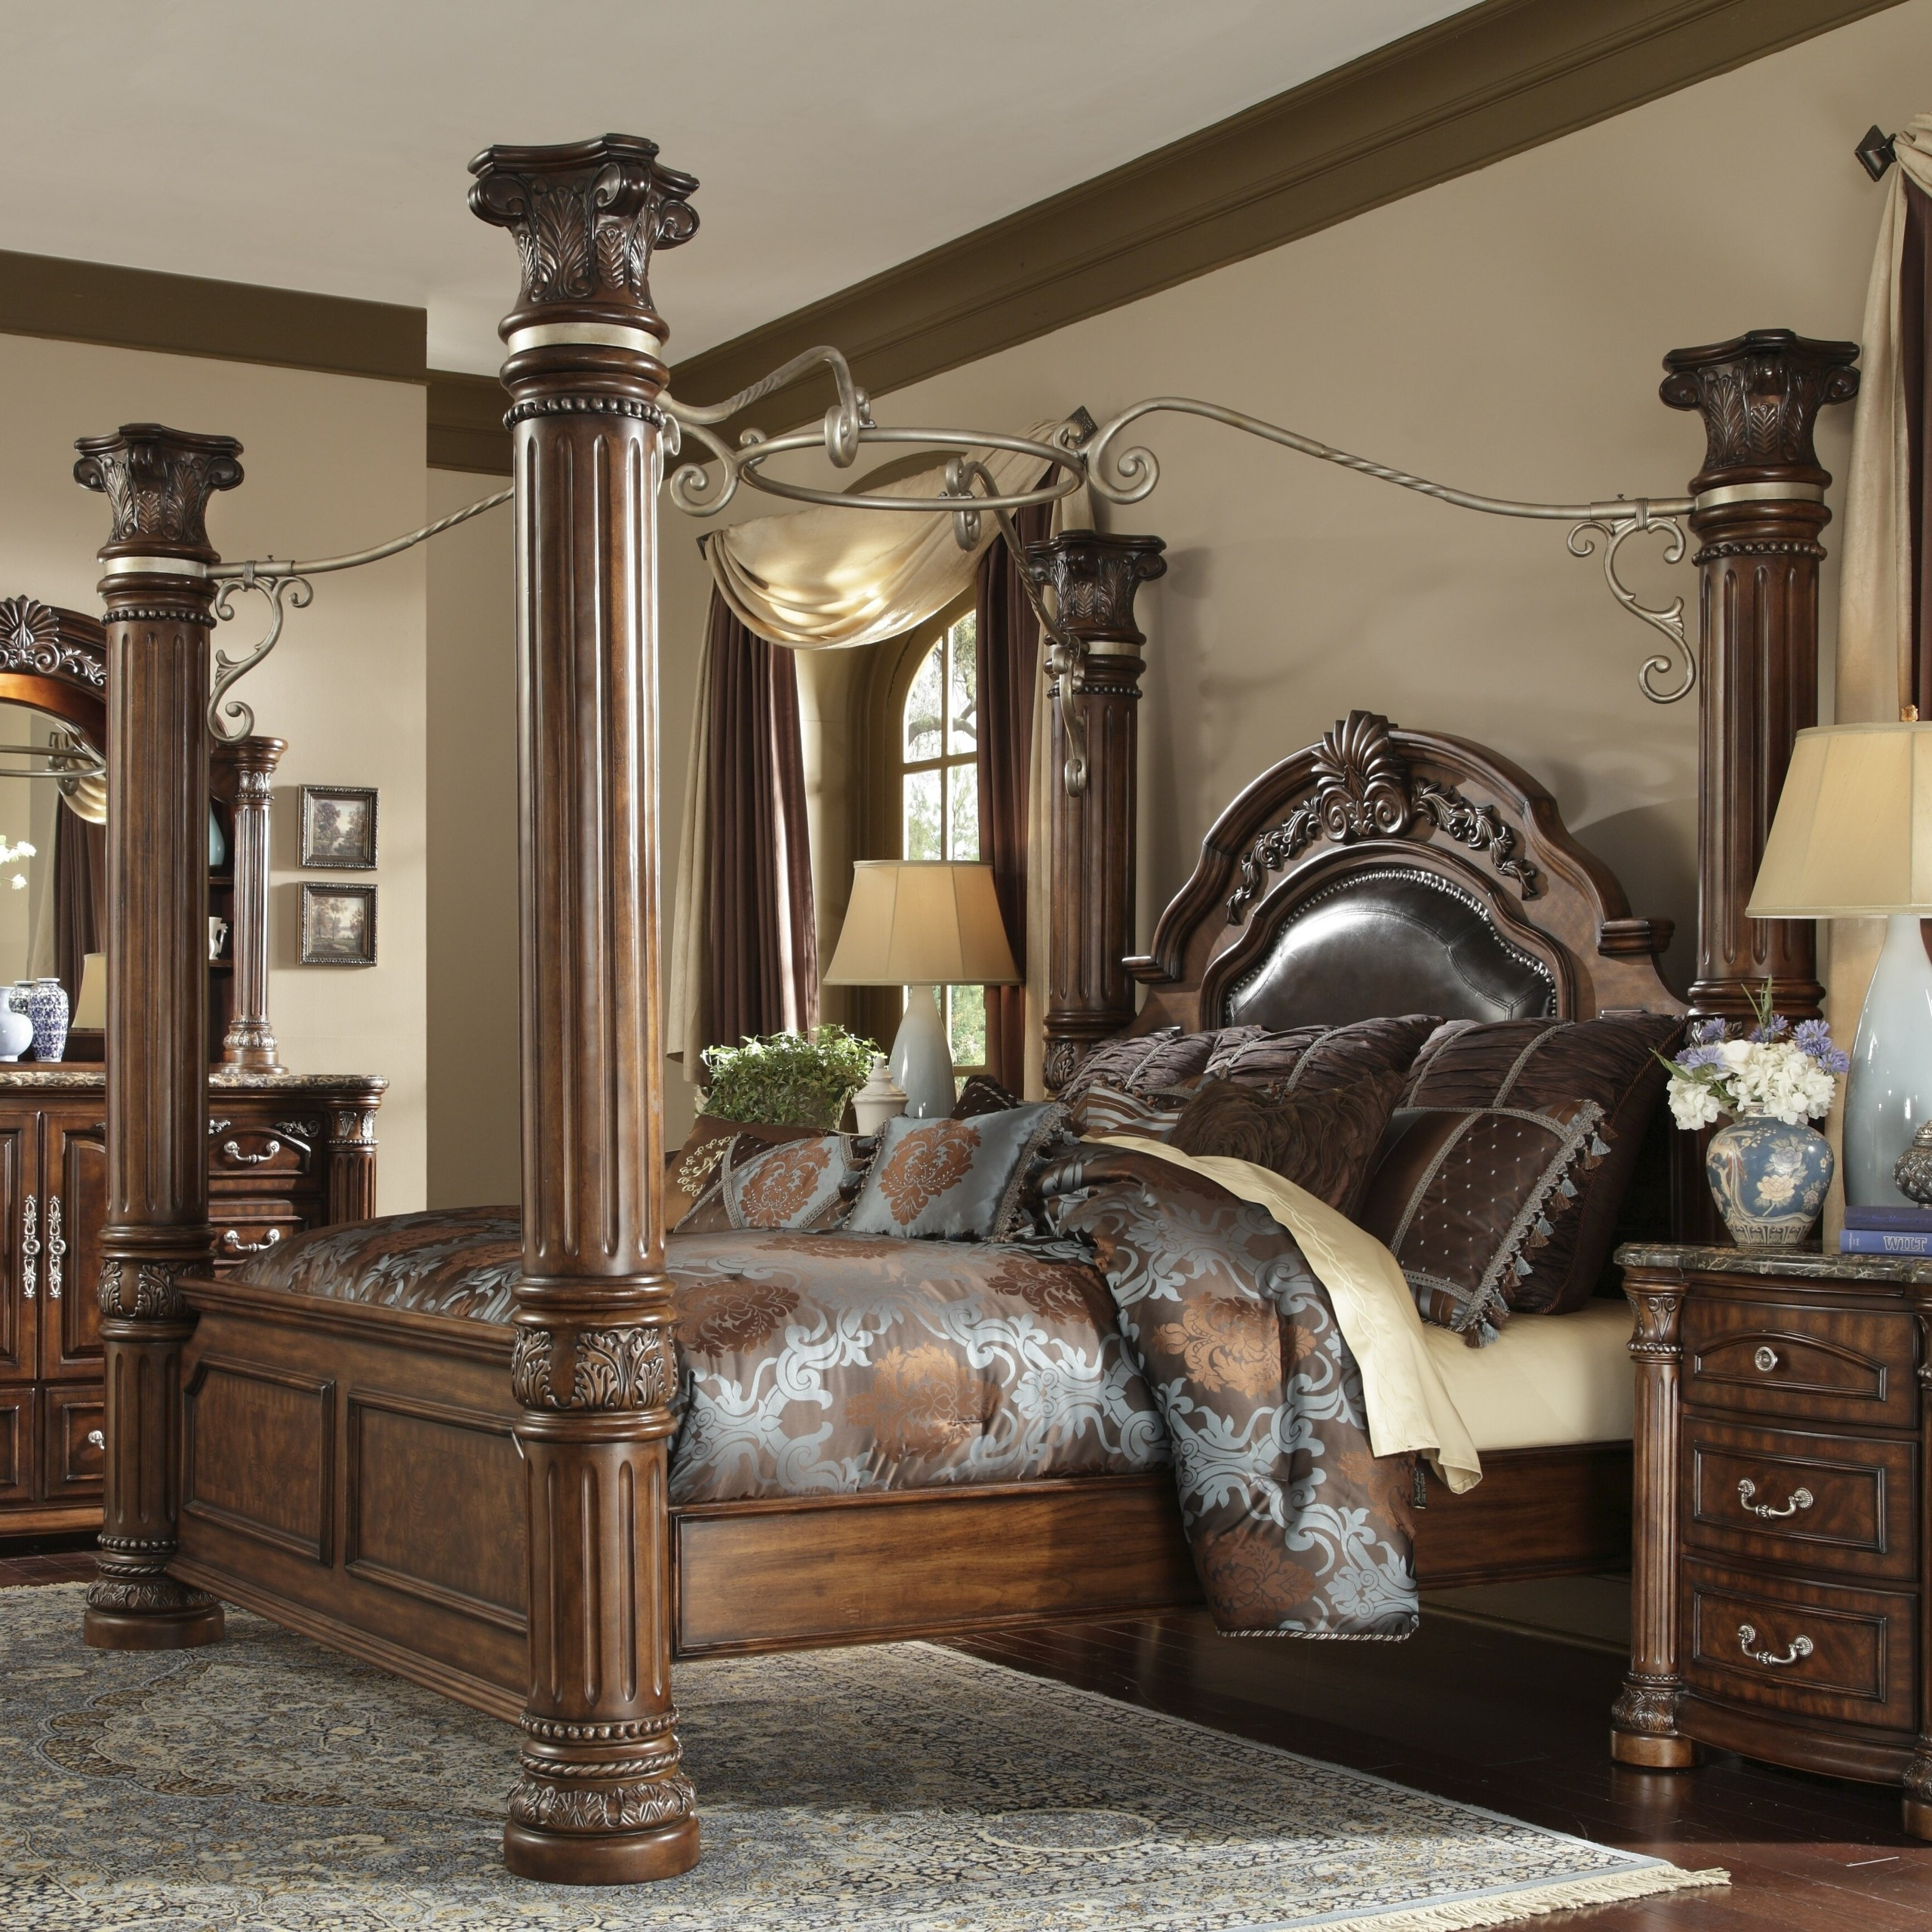 Exceptionnel Bedroom Sets If You Want To Sleep Like A King, You Should Take A Look At  This King Size Bed With Beautifully Turned Pillars. Itu0027s All Made Of Solid  Wood, ...